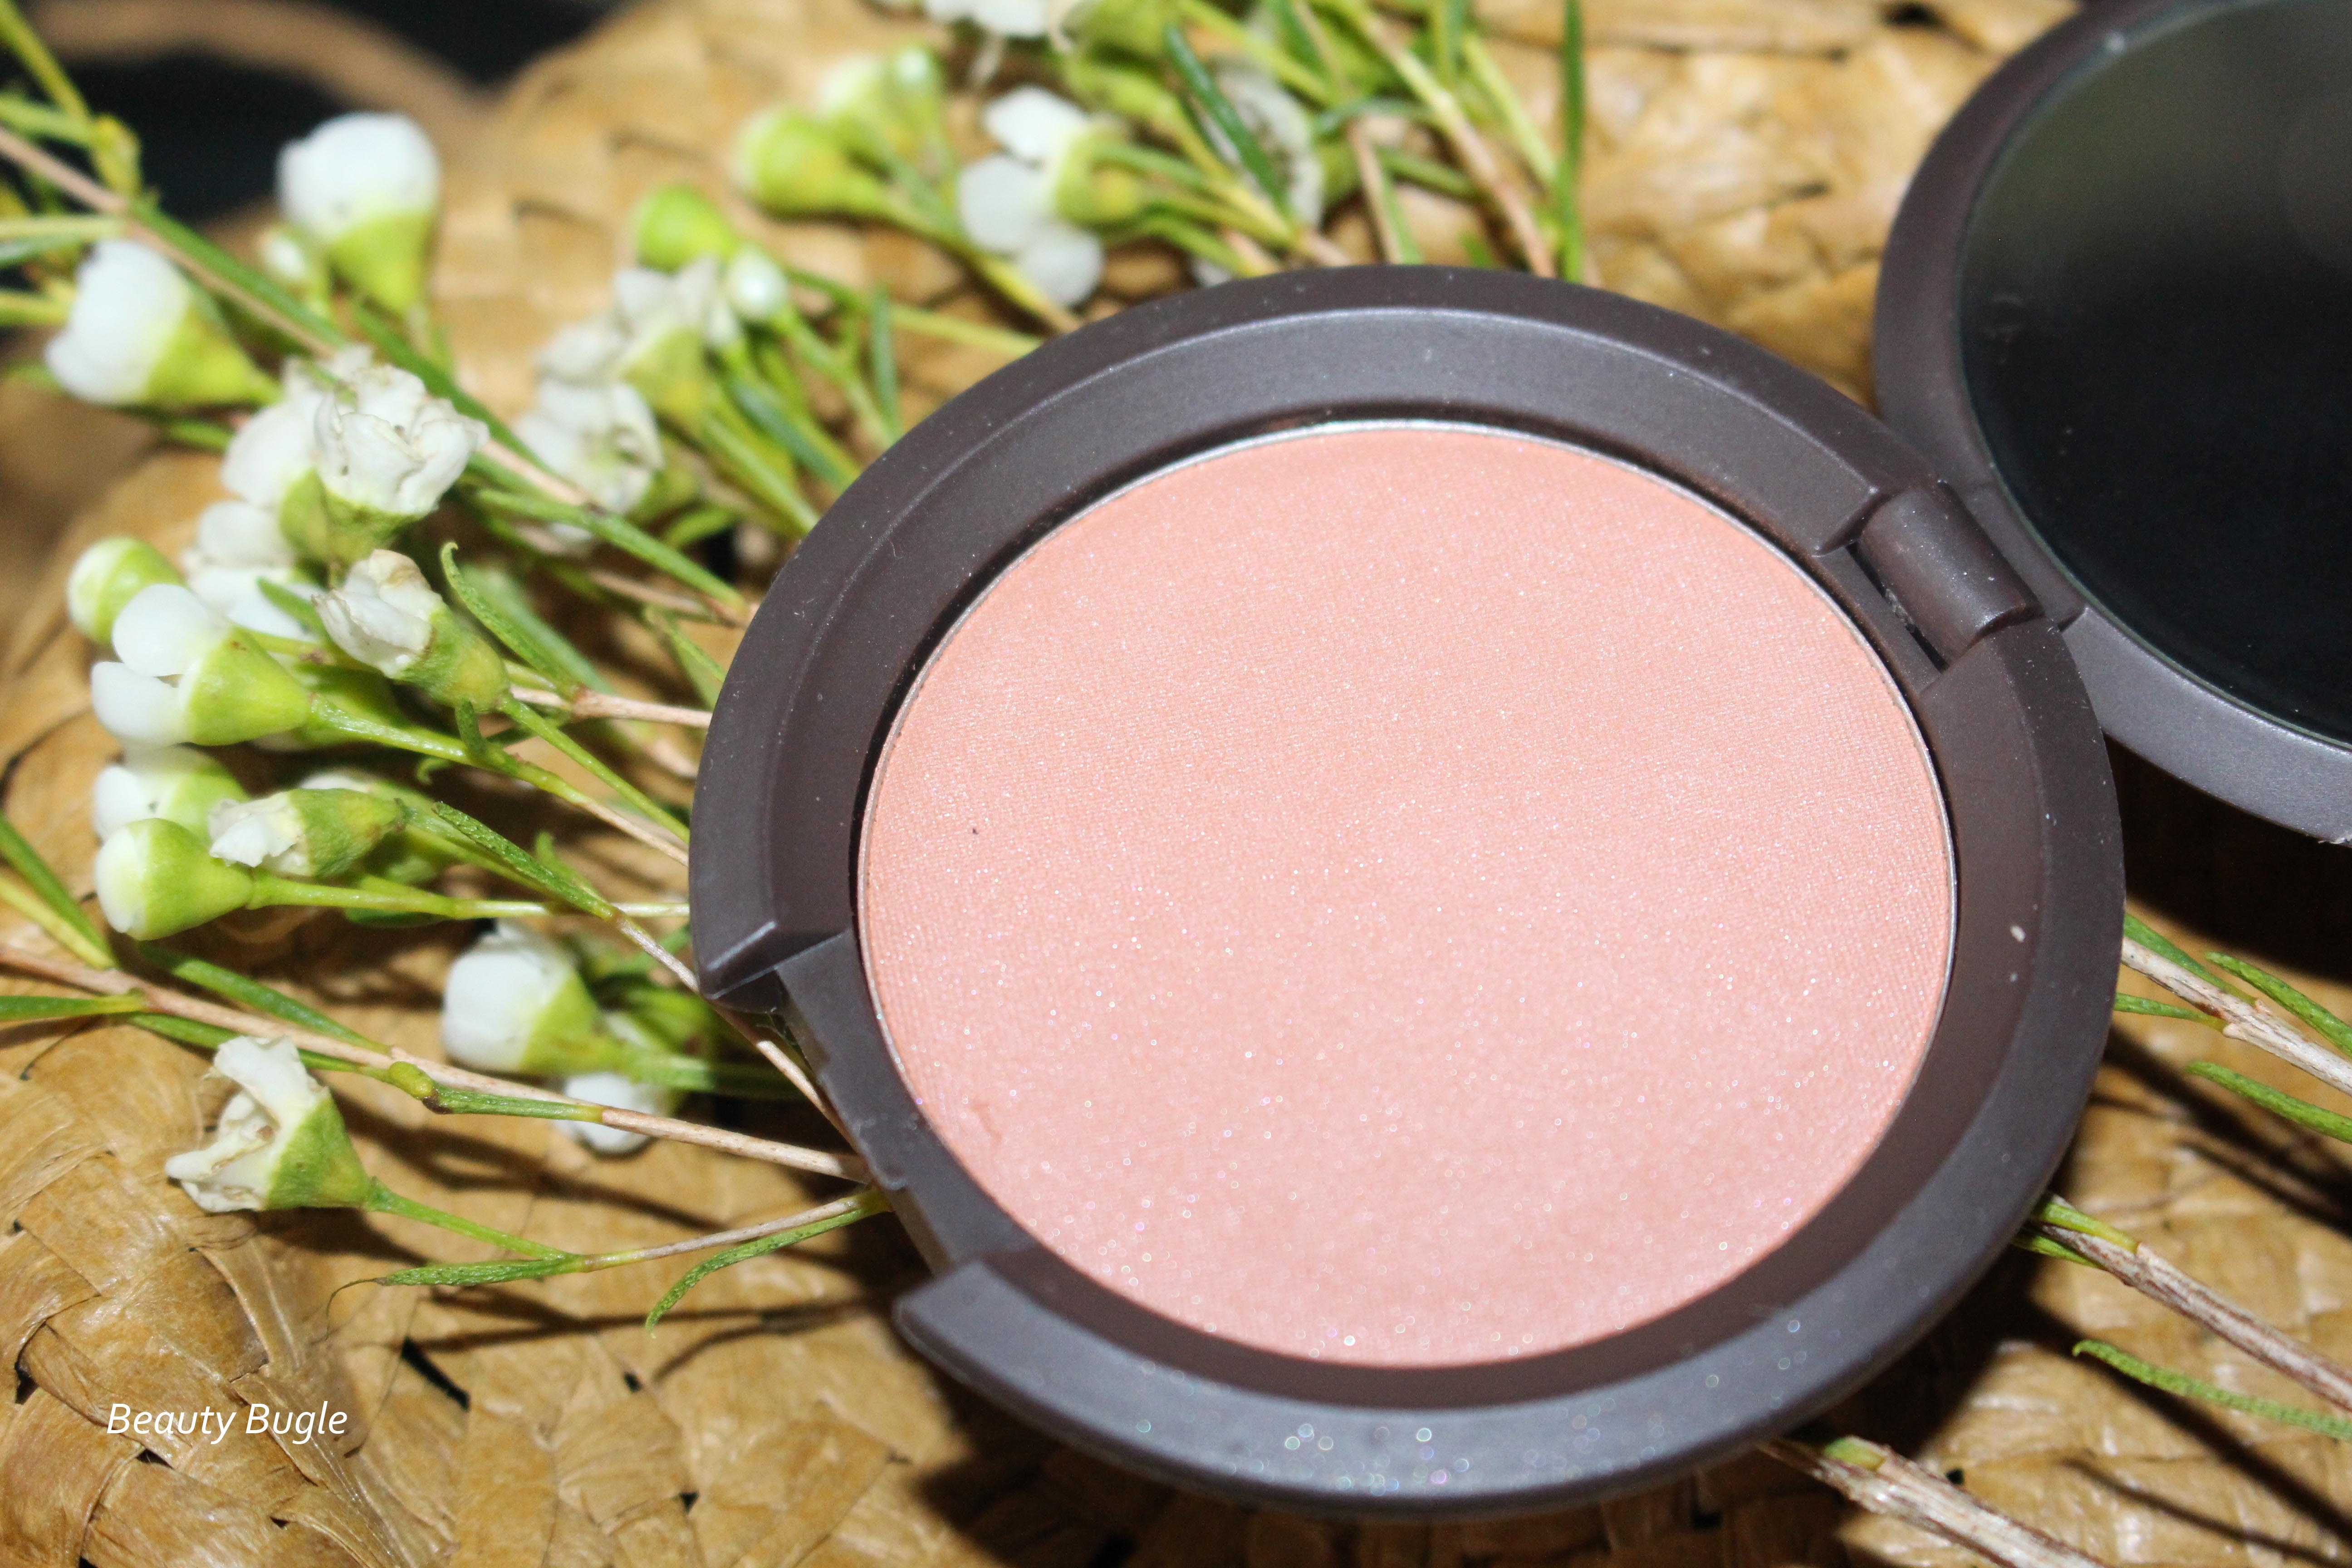 Becca Mineral Blush (Wild Honey) comes in a mirrored compact, not that you can see much in the teeny tiny mirror!